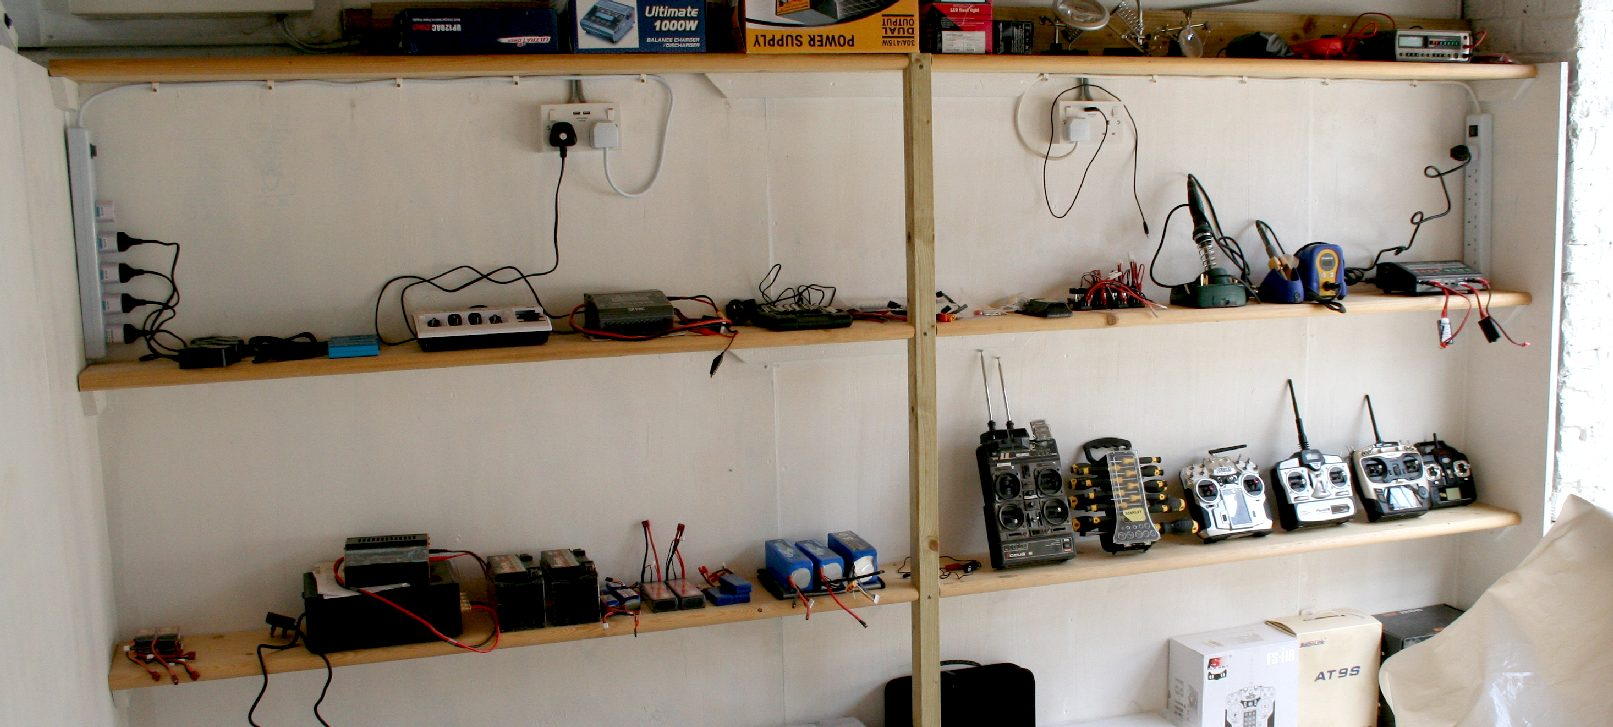 Batteries Power Dischargers Charging Station Balancing Lipo Lithium Experiments Seavax